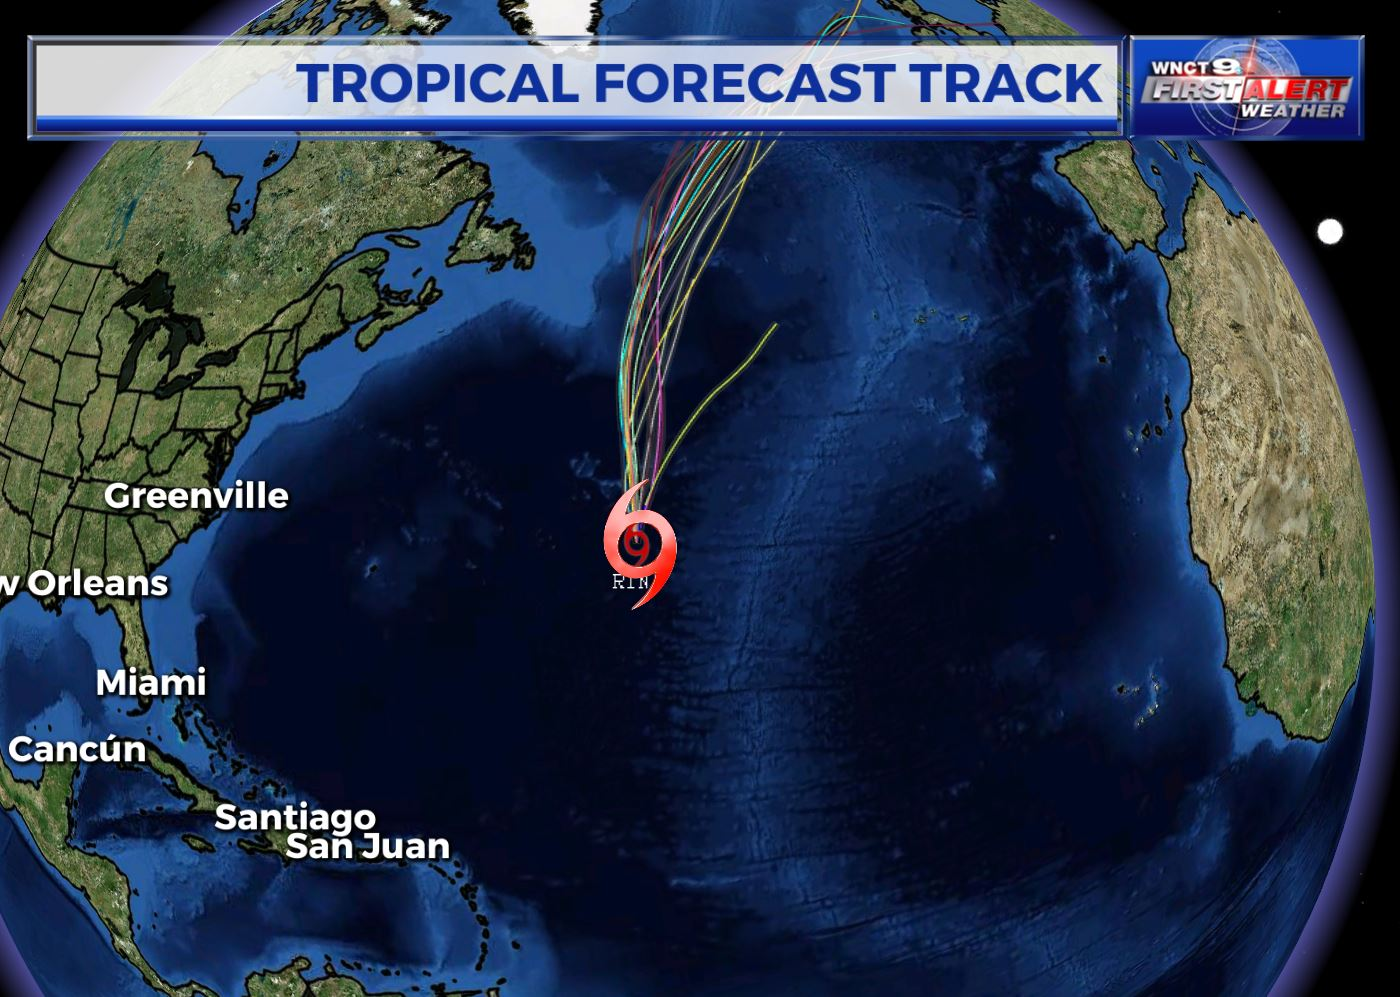 Tropical Storm Rina headed toward North Atlantic